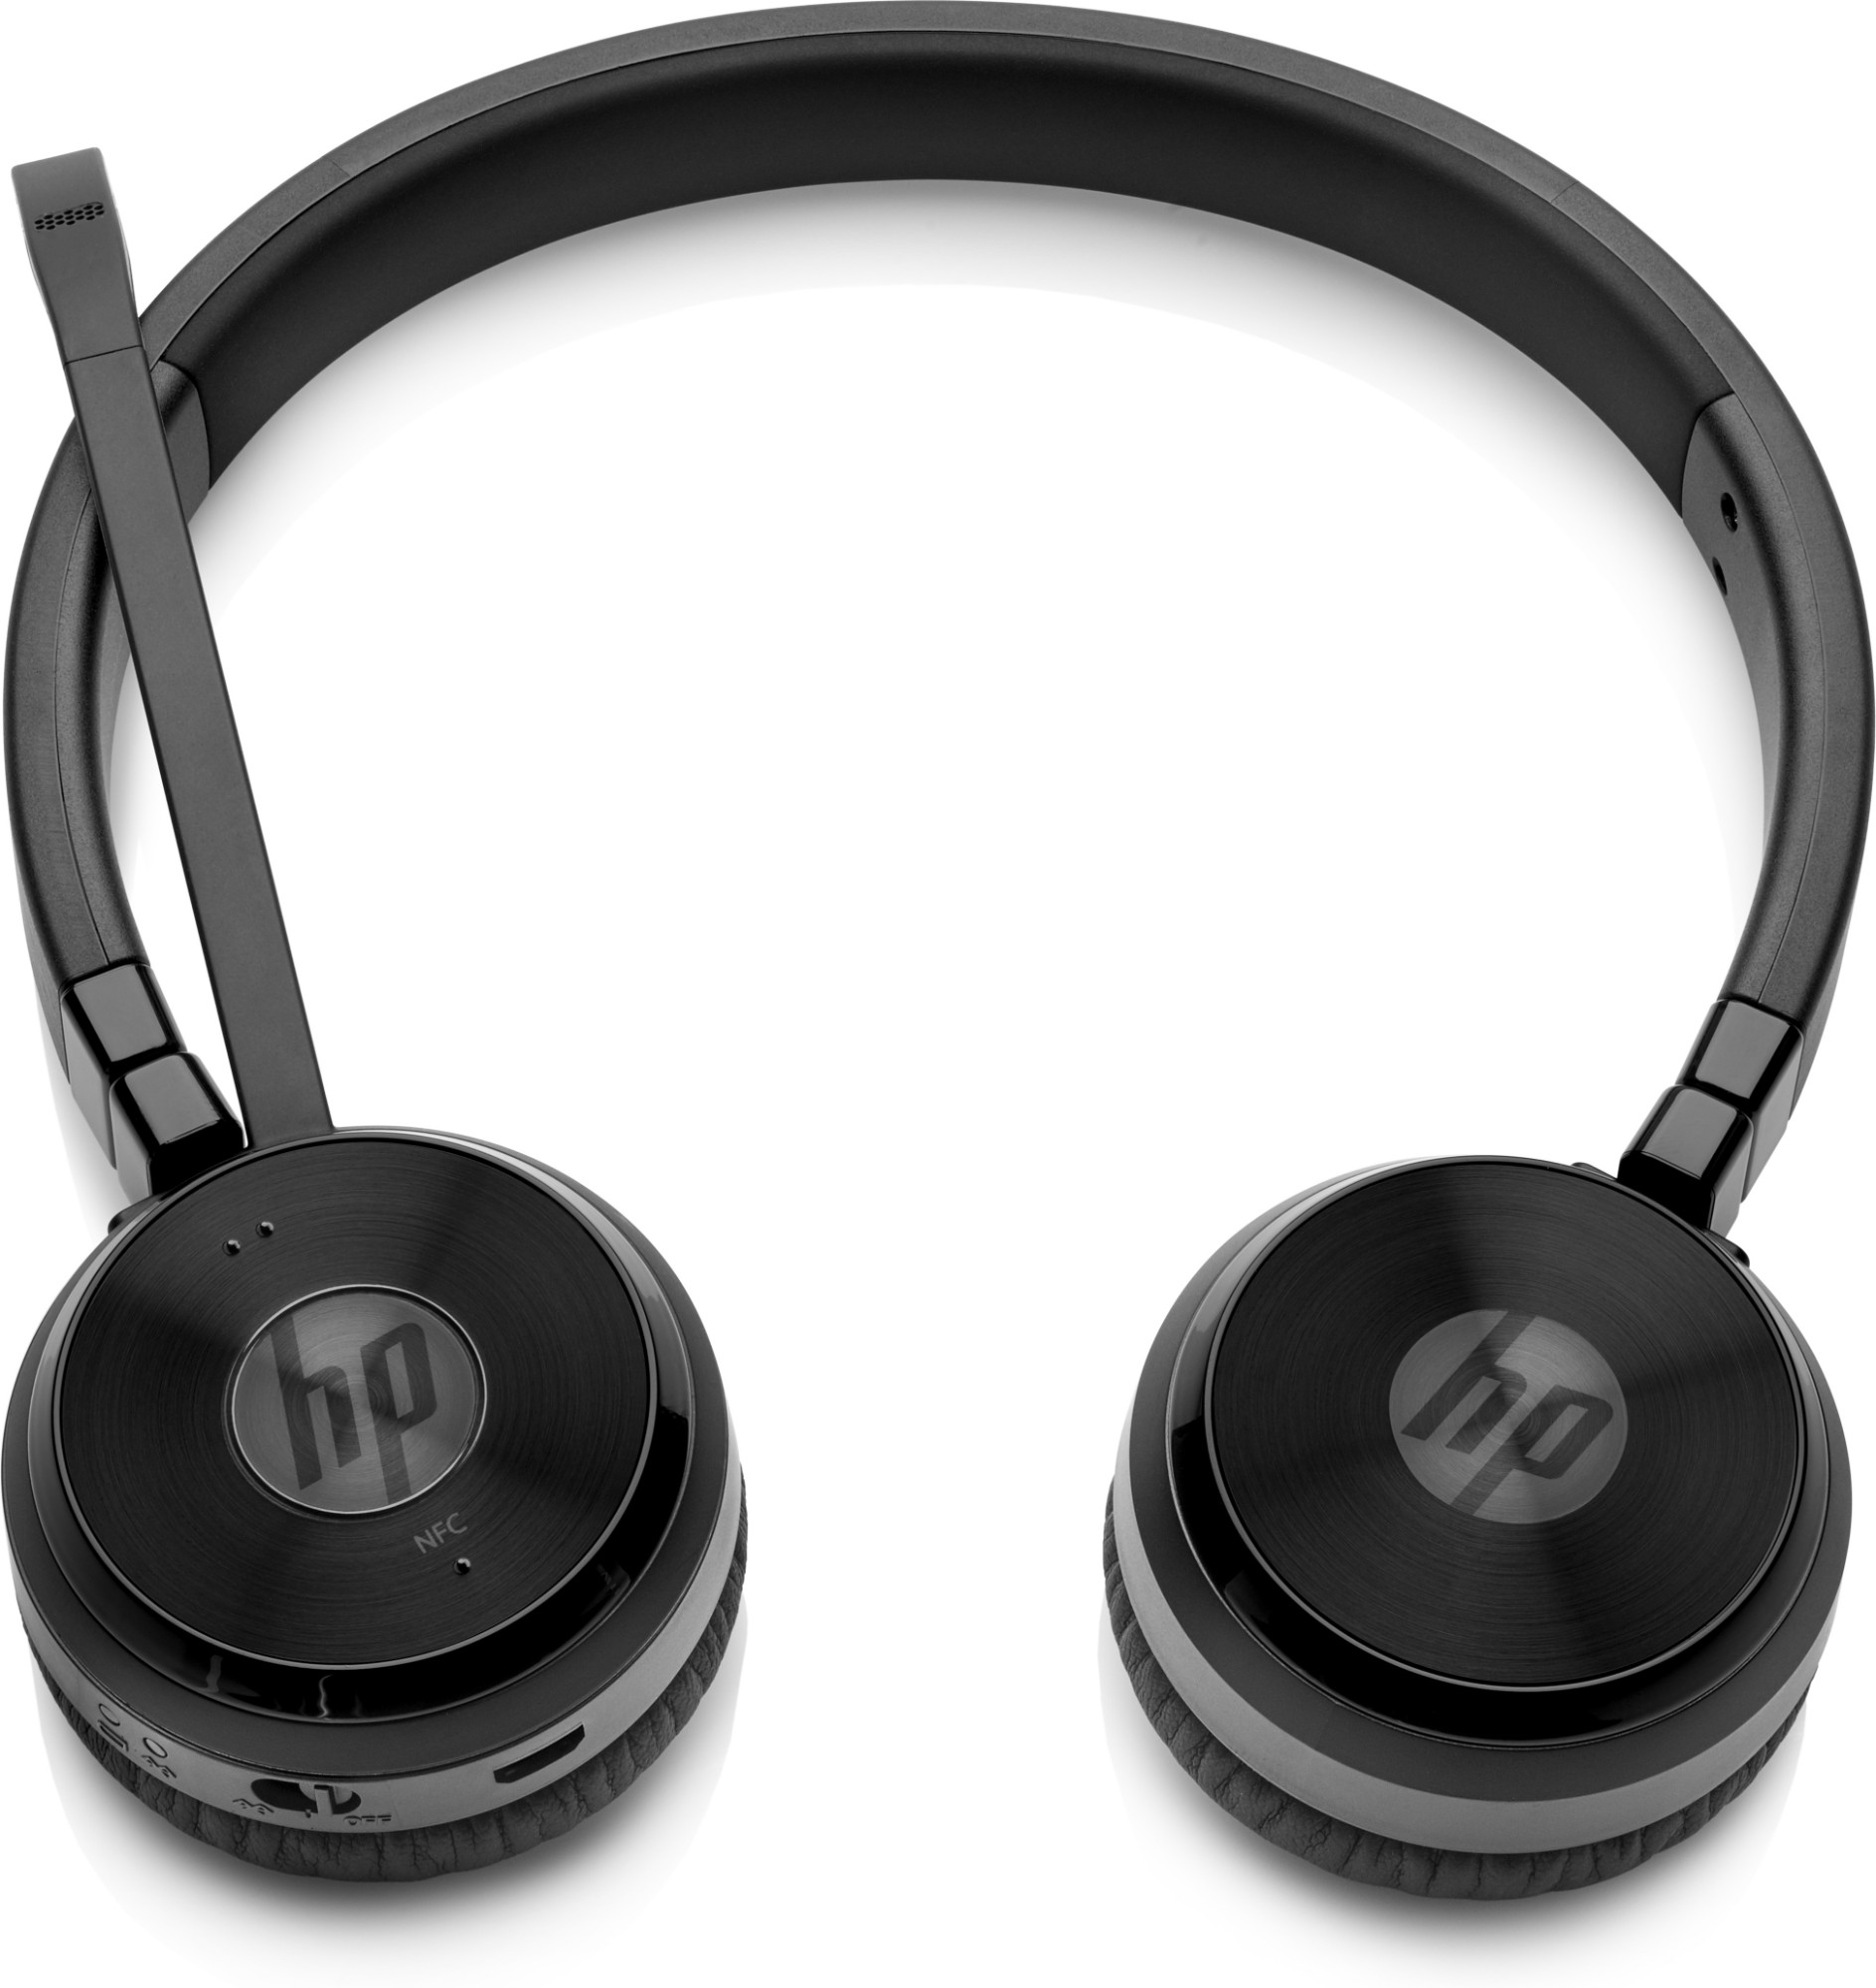 UC Wireless Duo Headset